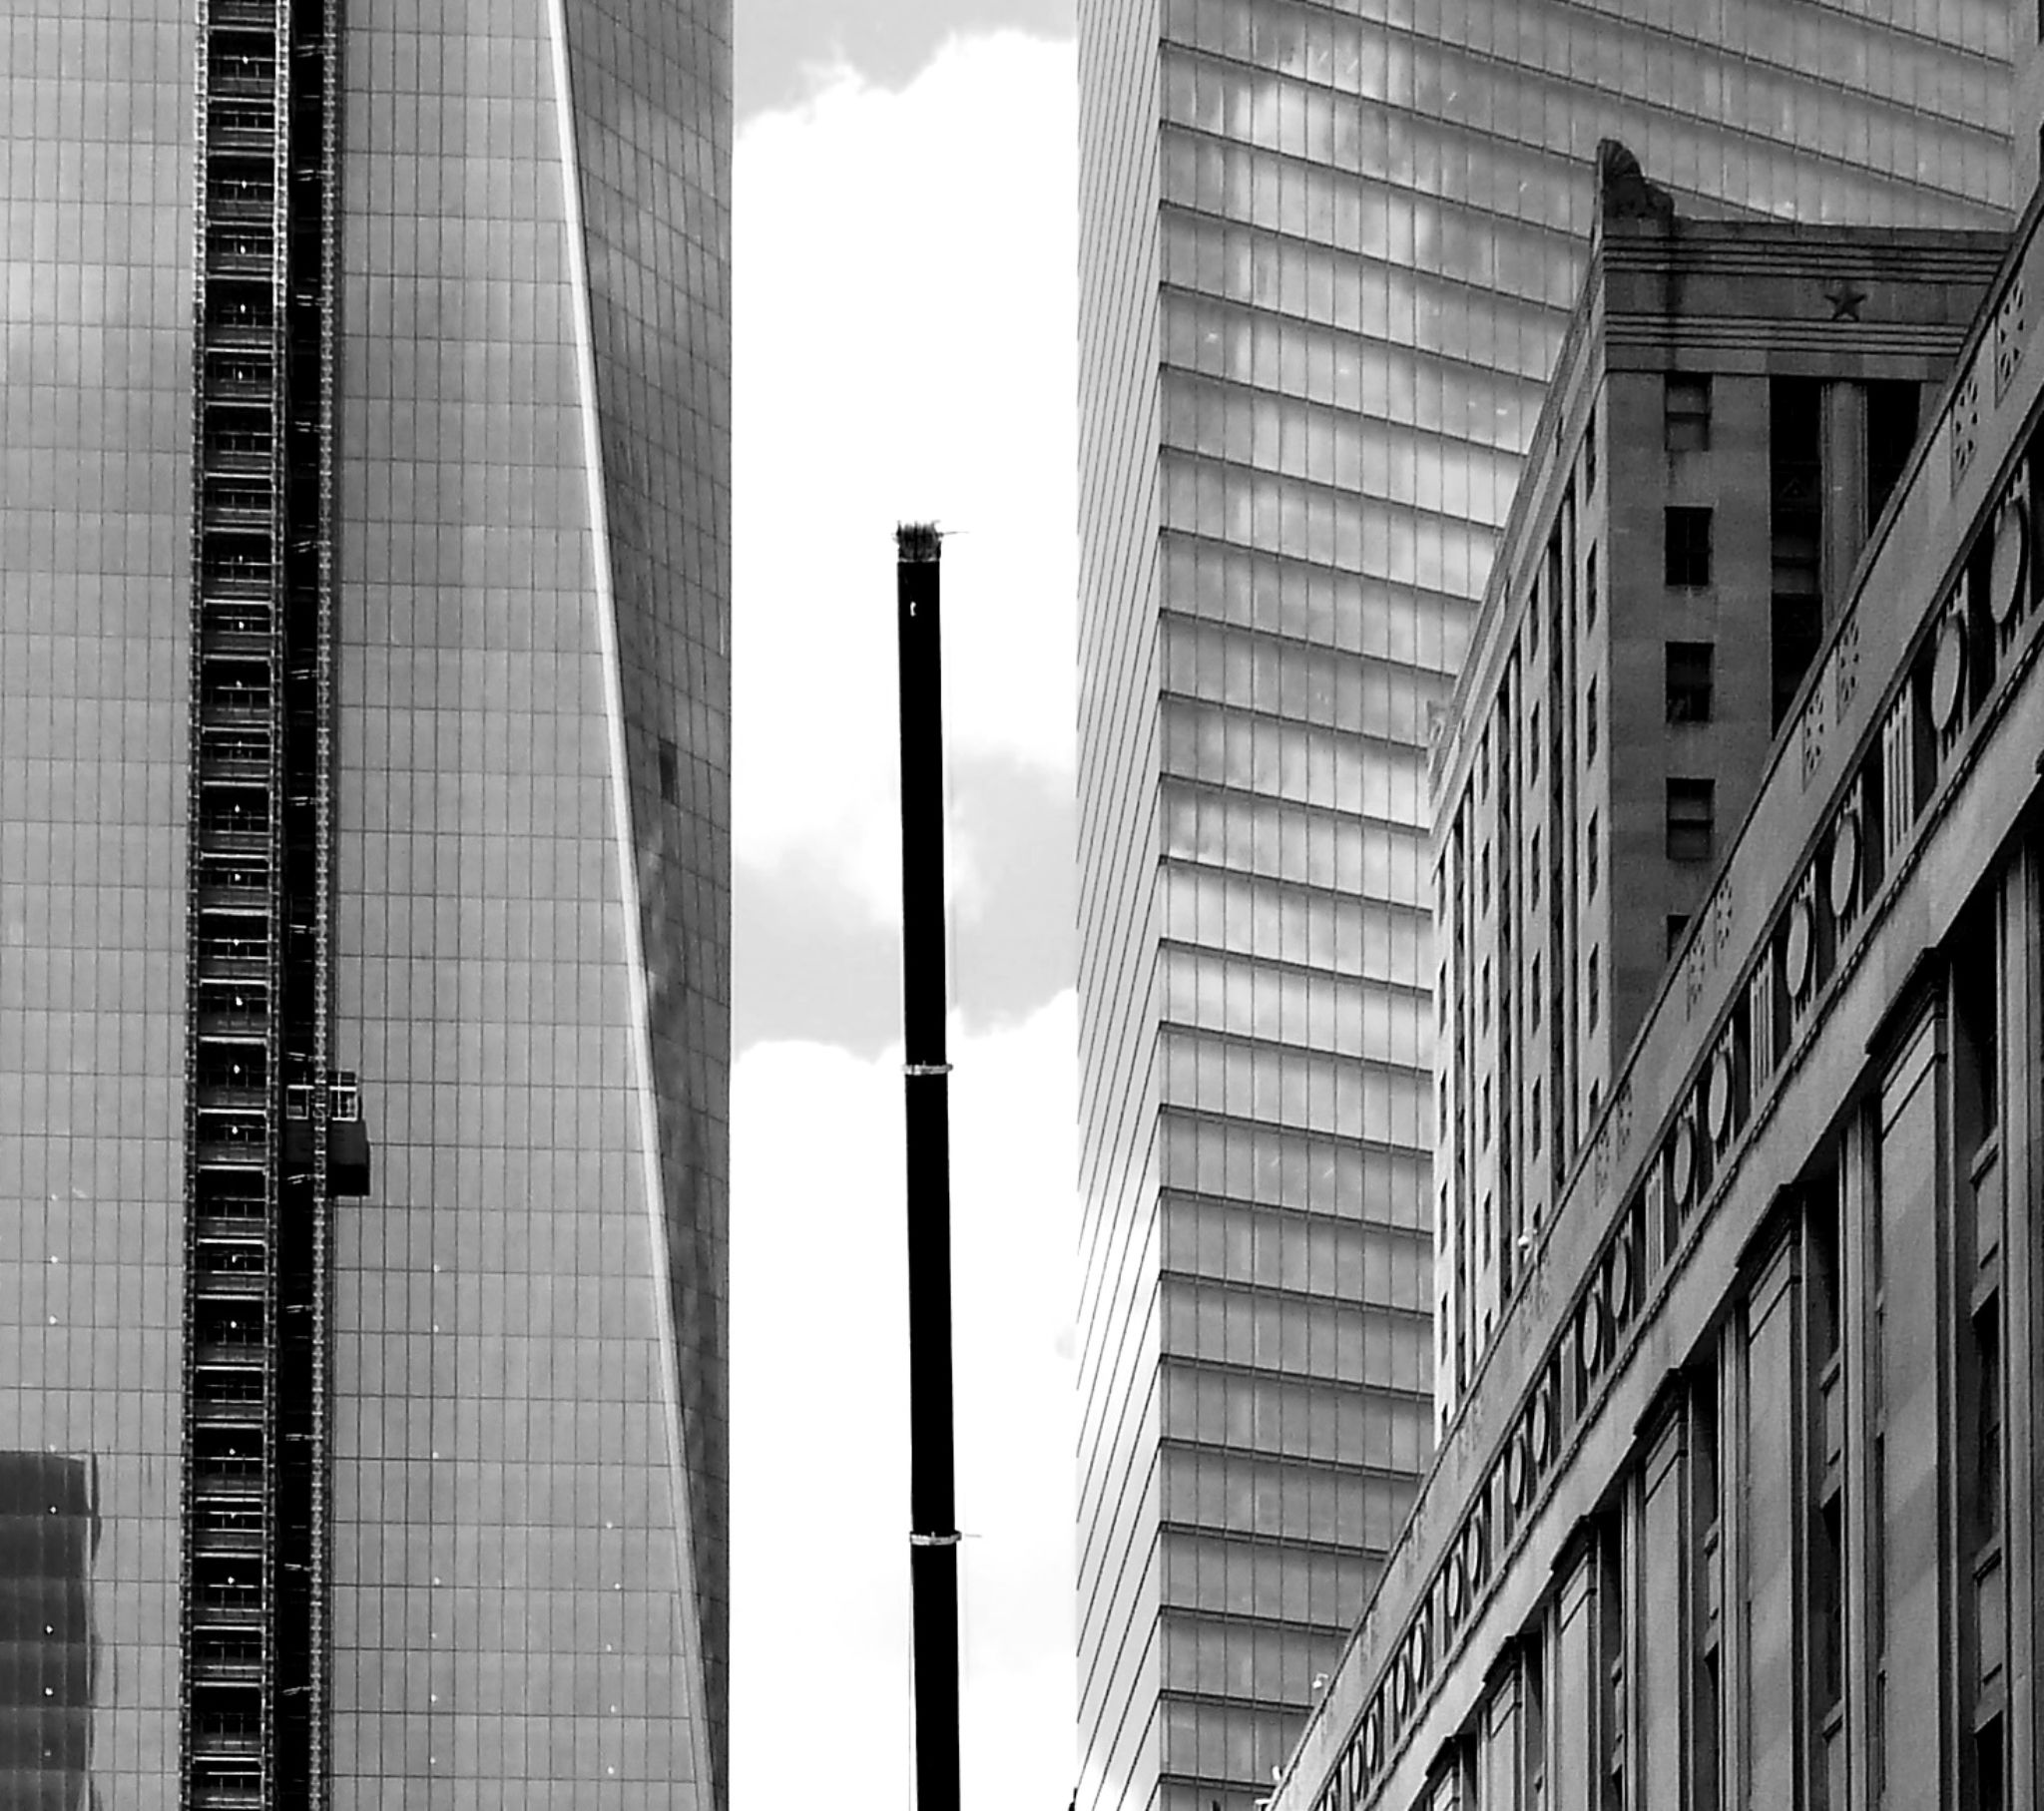 Freedom Tower nearing completion. NYC. B&W by Anton Agalbato